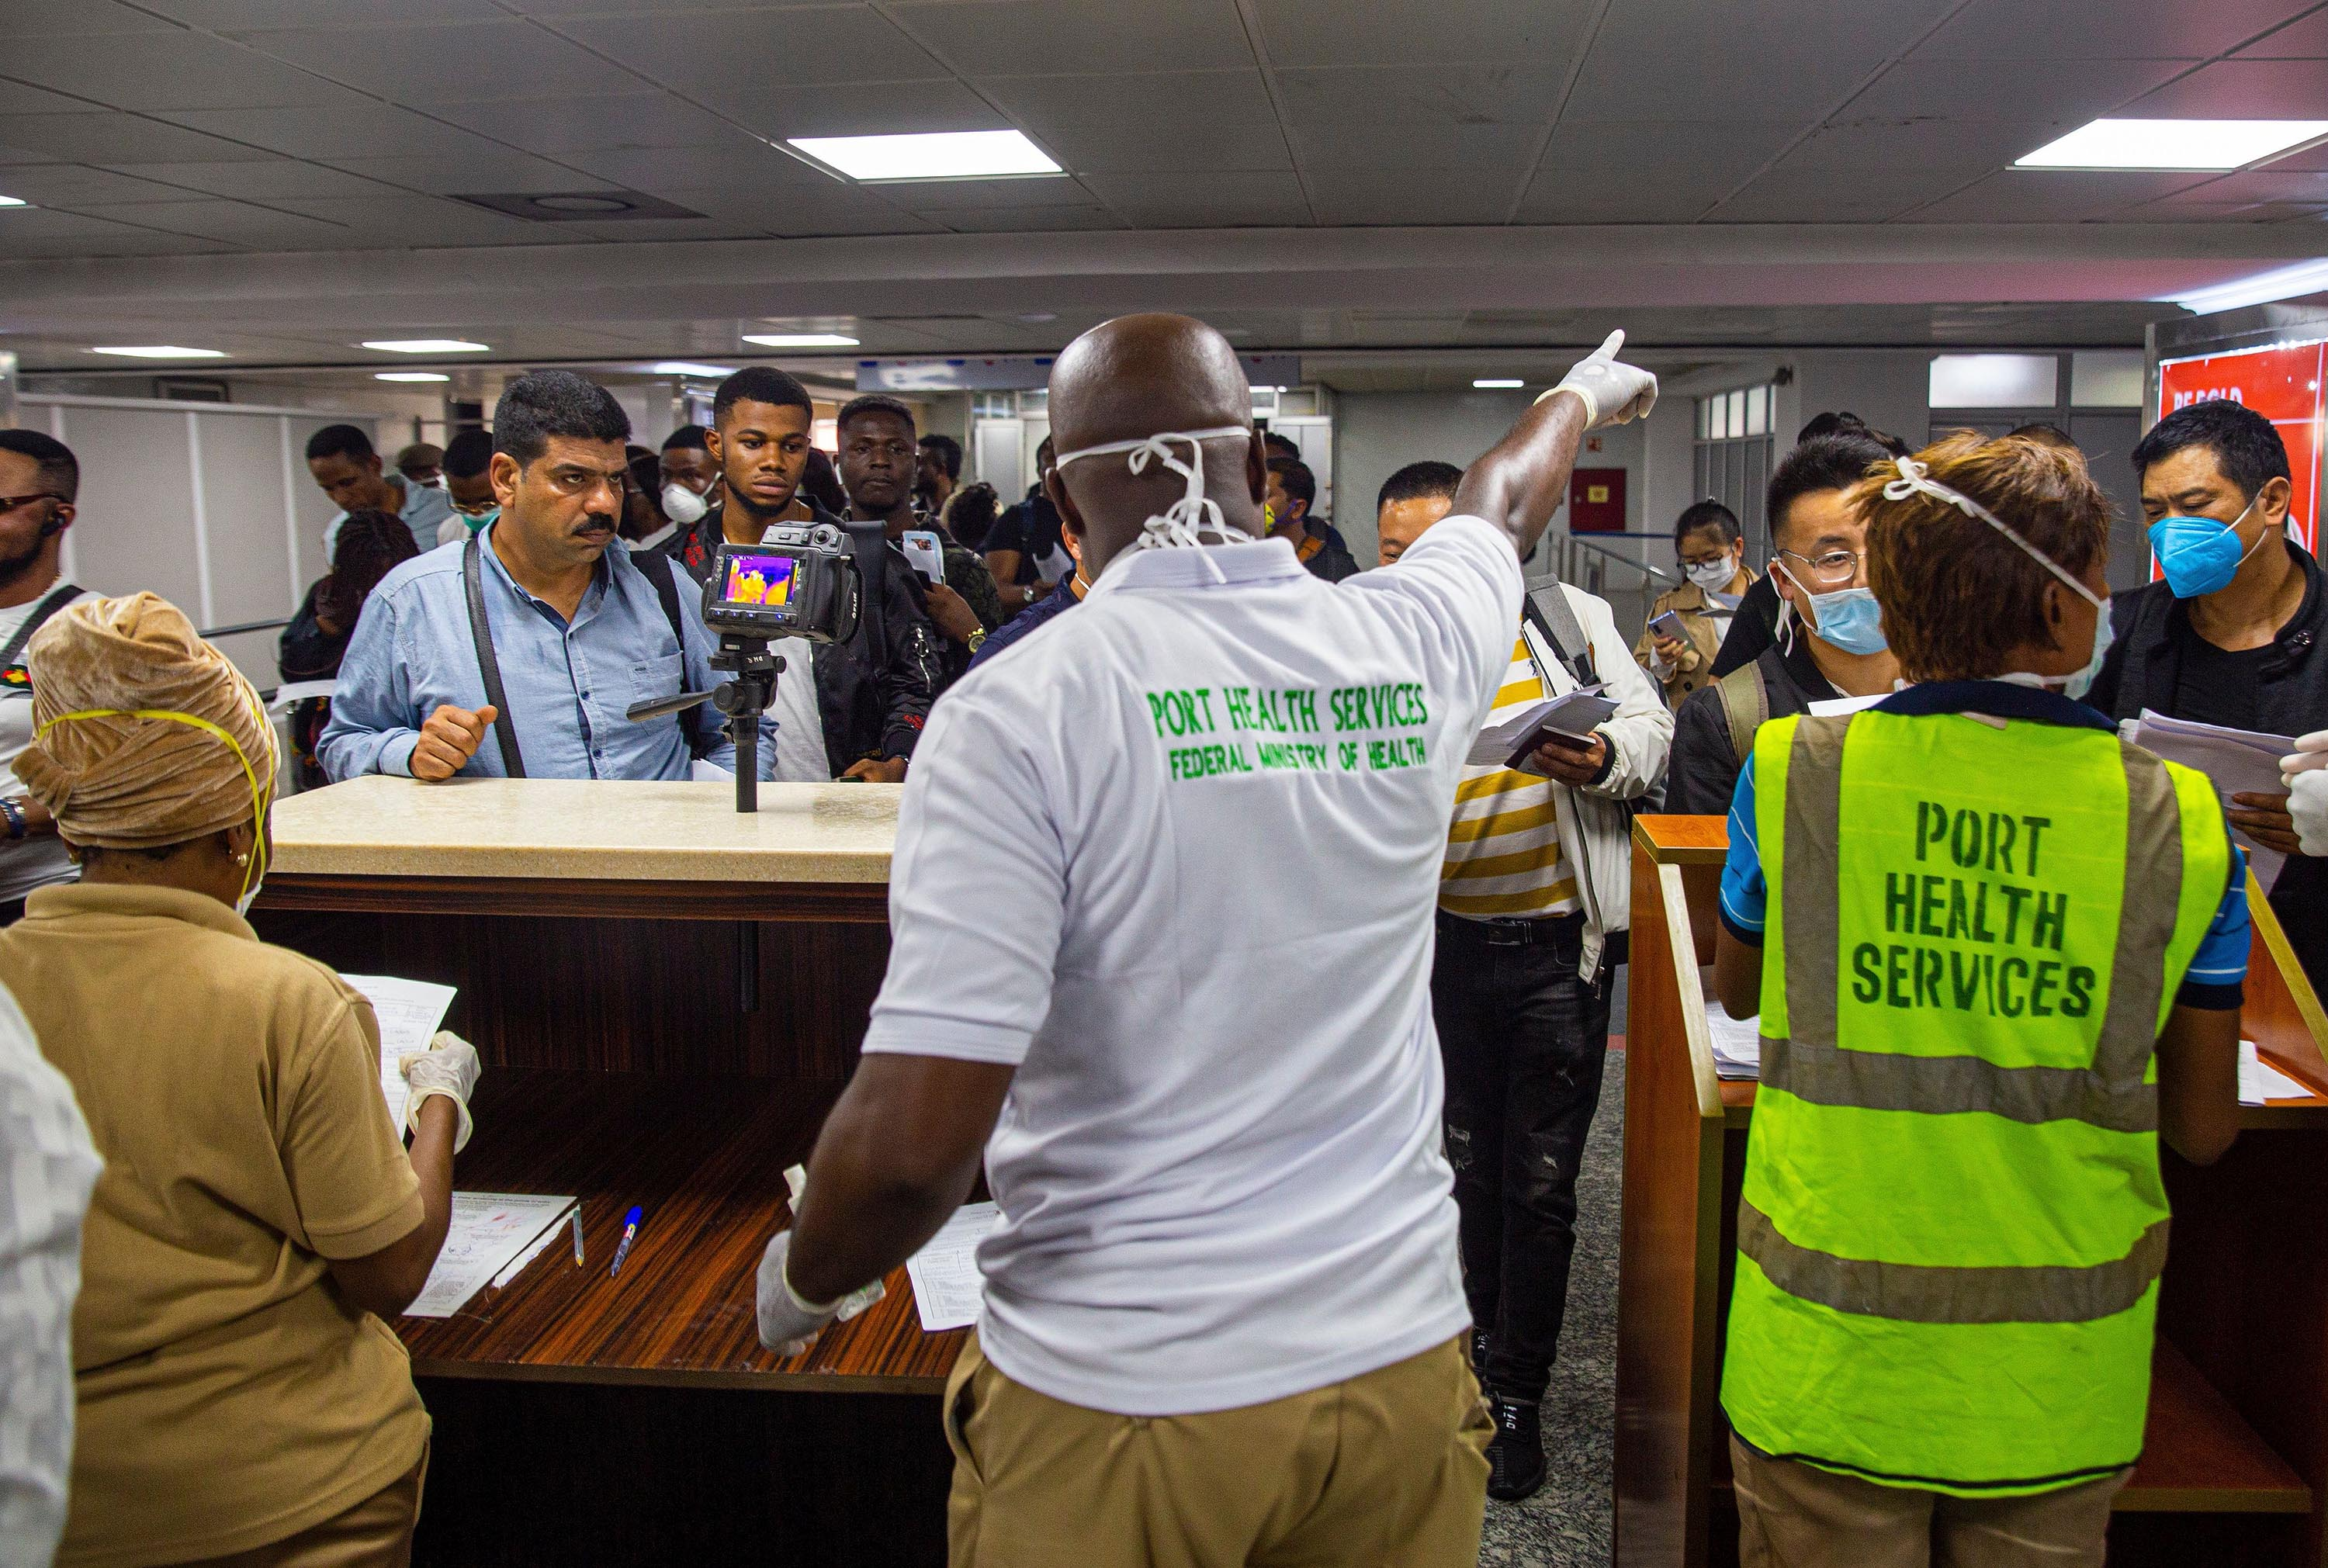 Health officials screen passengers at Murtala International Airport in Lagos, Nigeria, on March 2.